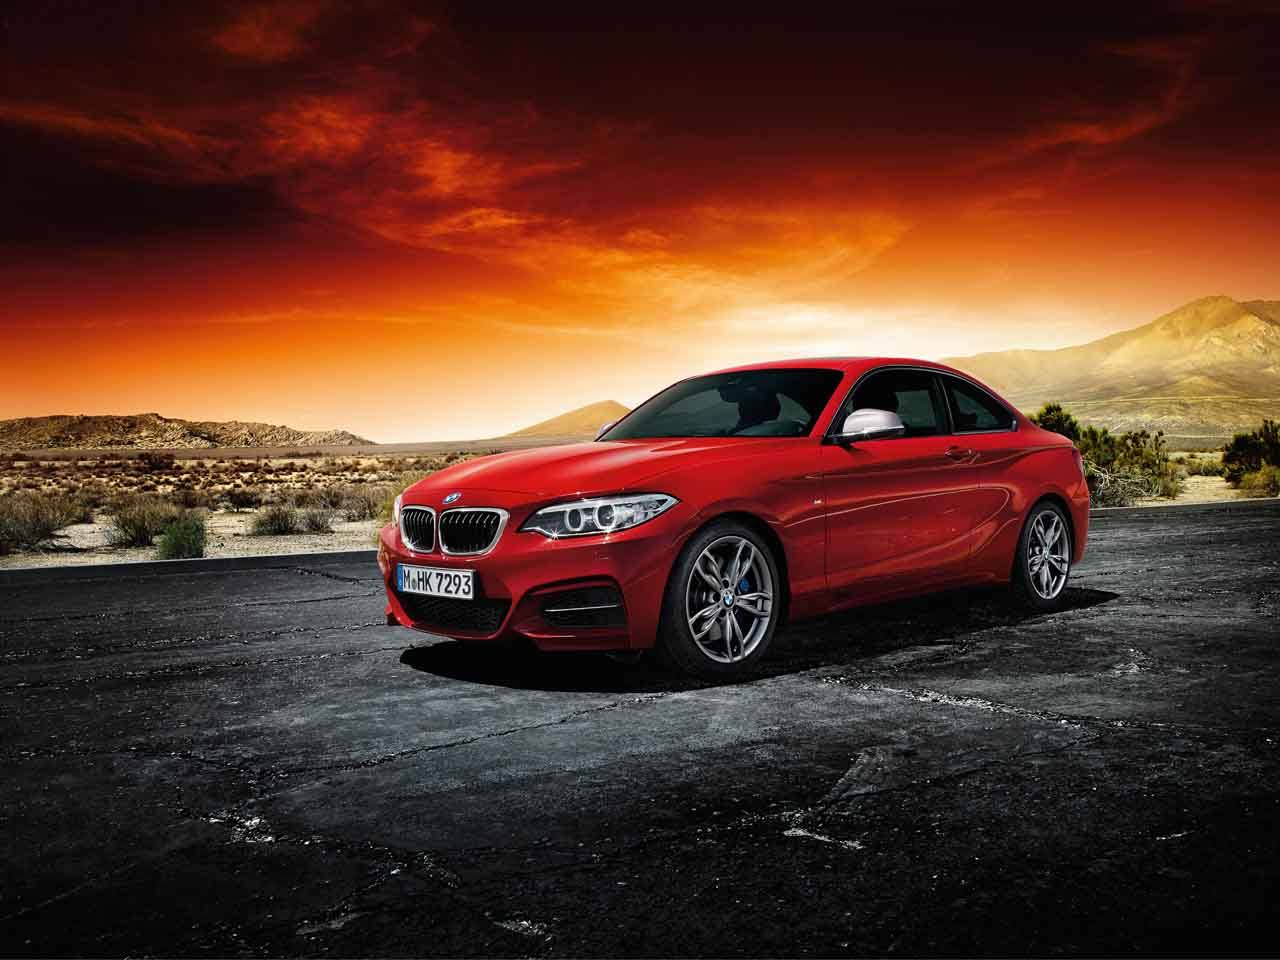 BMW 230i xDrive Coupe Demo for $569 / month.